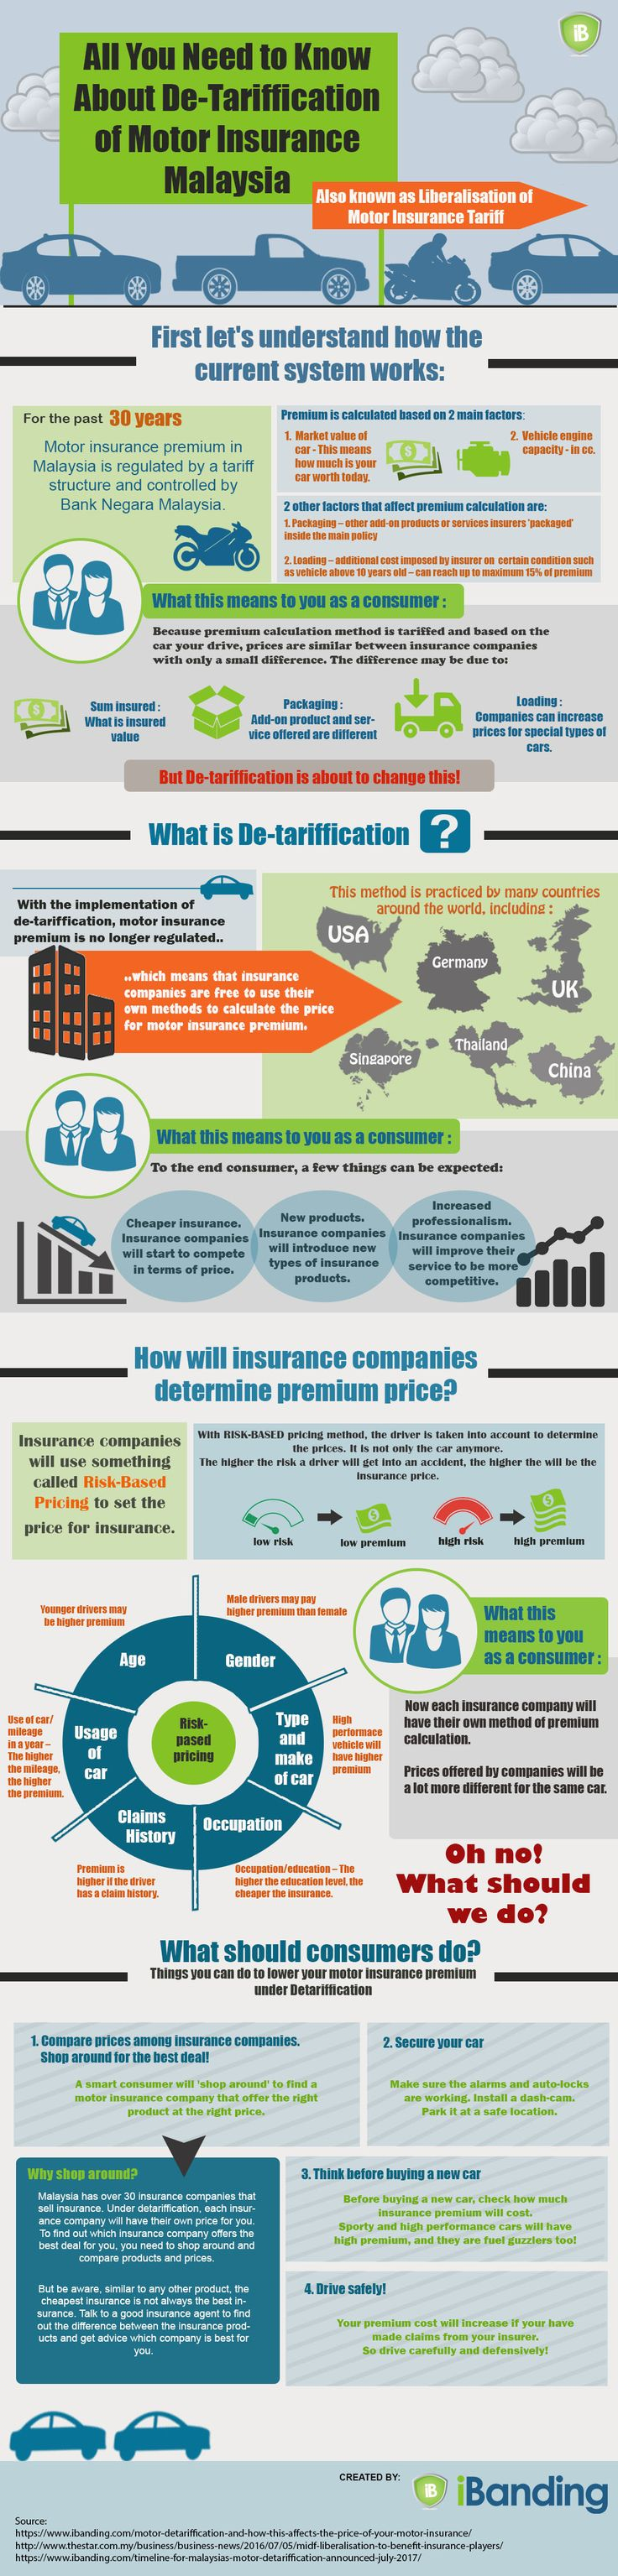 Detariffication in Malaysia - All You Need To Know About De-Tariffication of Motor Insurance in Malaysia – Infographic